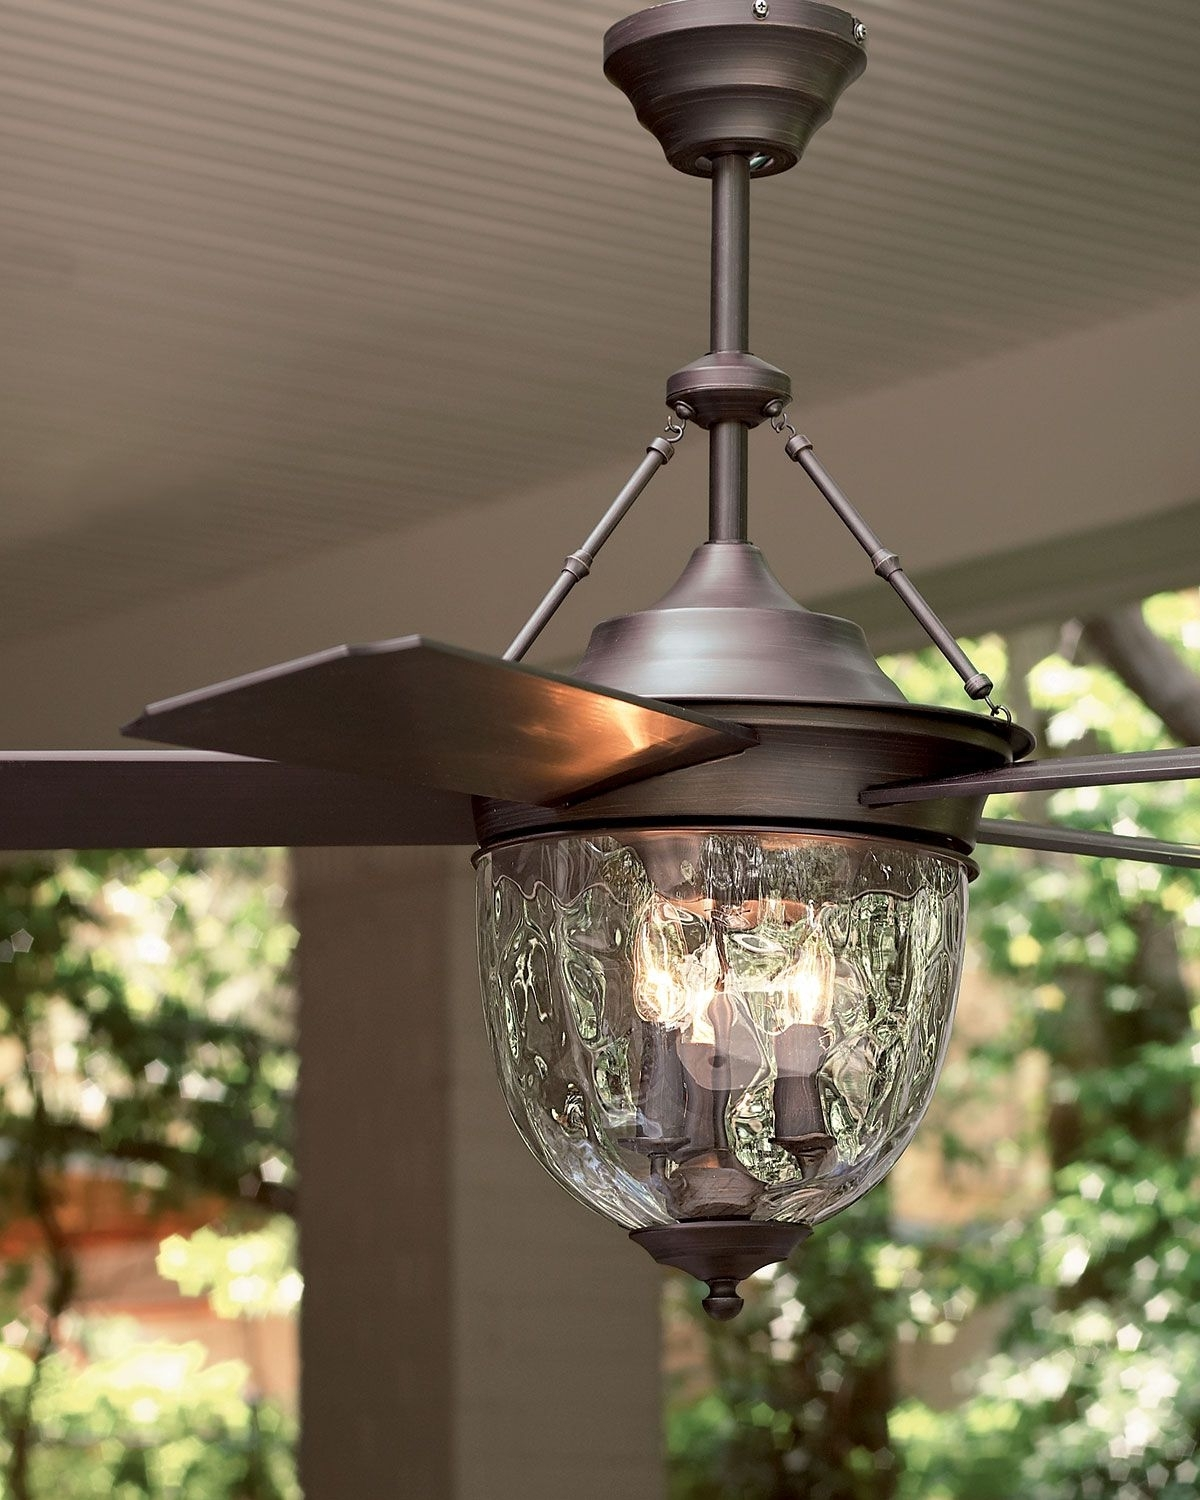 Outdoor Areas For Outdoor Ceiling Fans With Lantern (View 13 of 20)